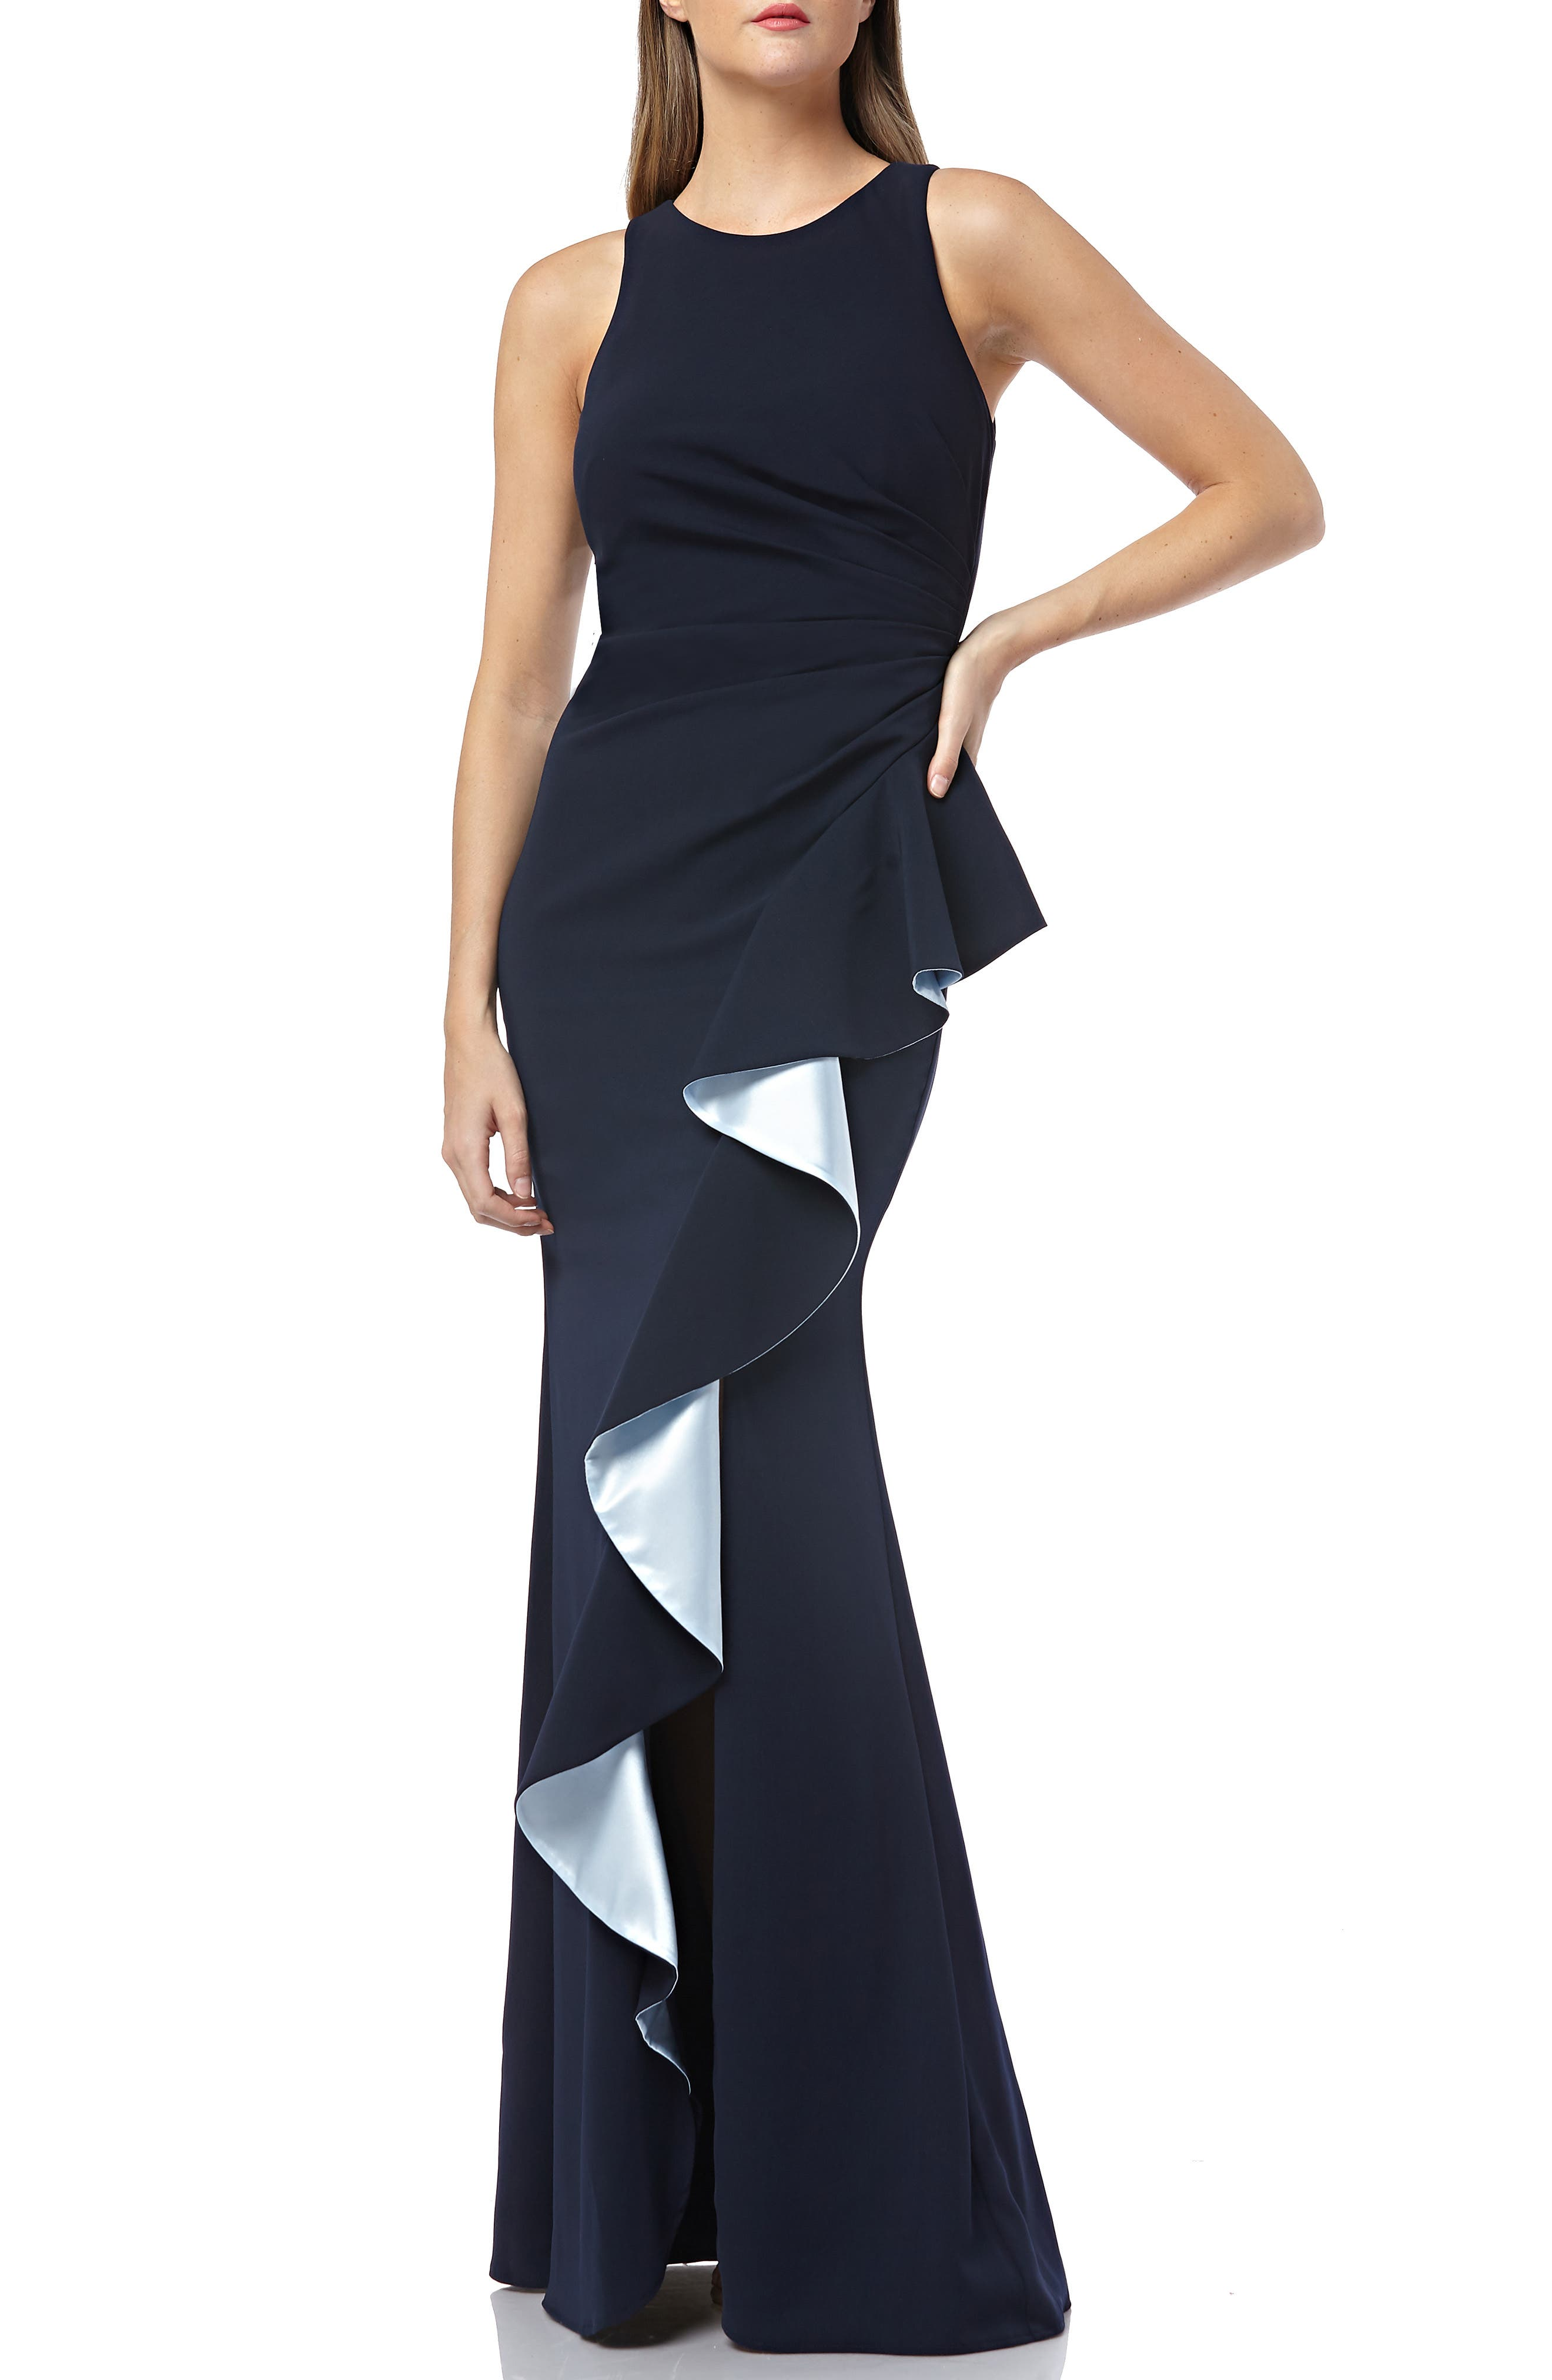 CARMEN MARC VALVO INFUSION Carmen Marc Valvo Couture Infusion Ruffle Gown, Main, color, NAVY/ ICE BLUE